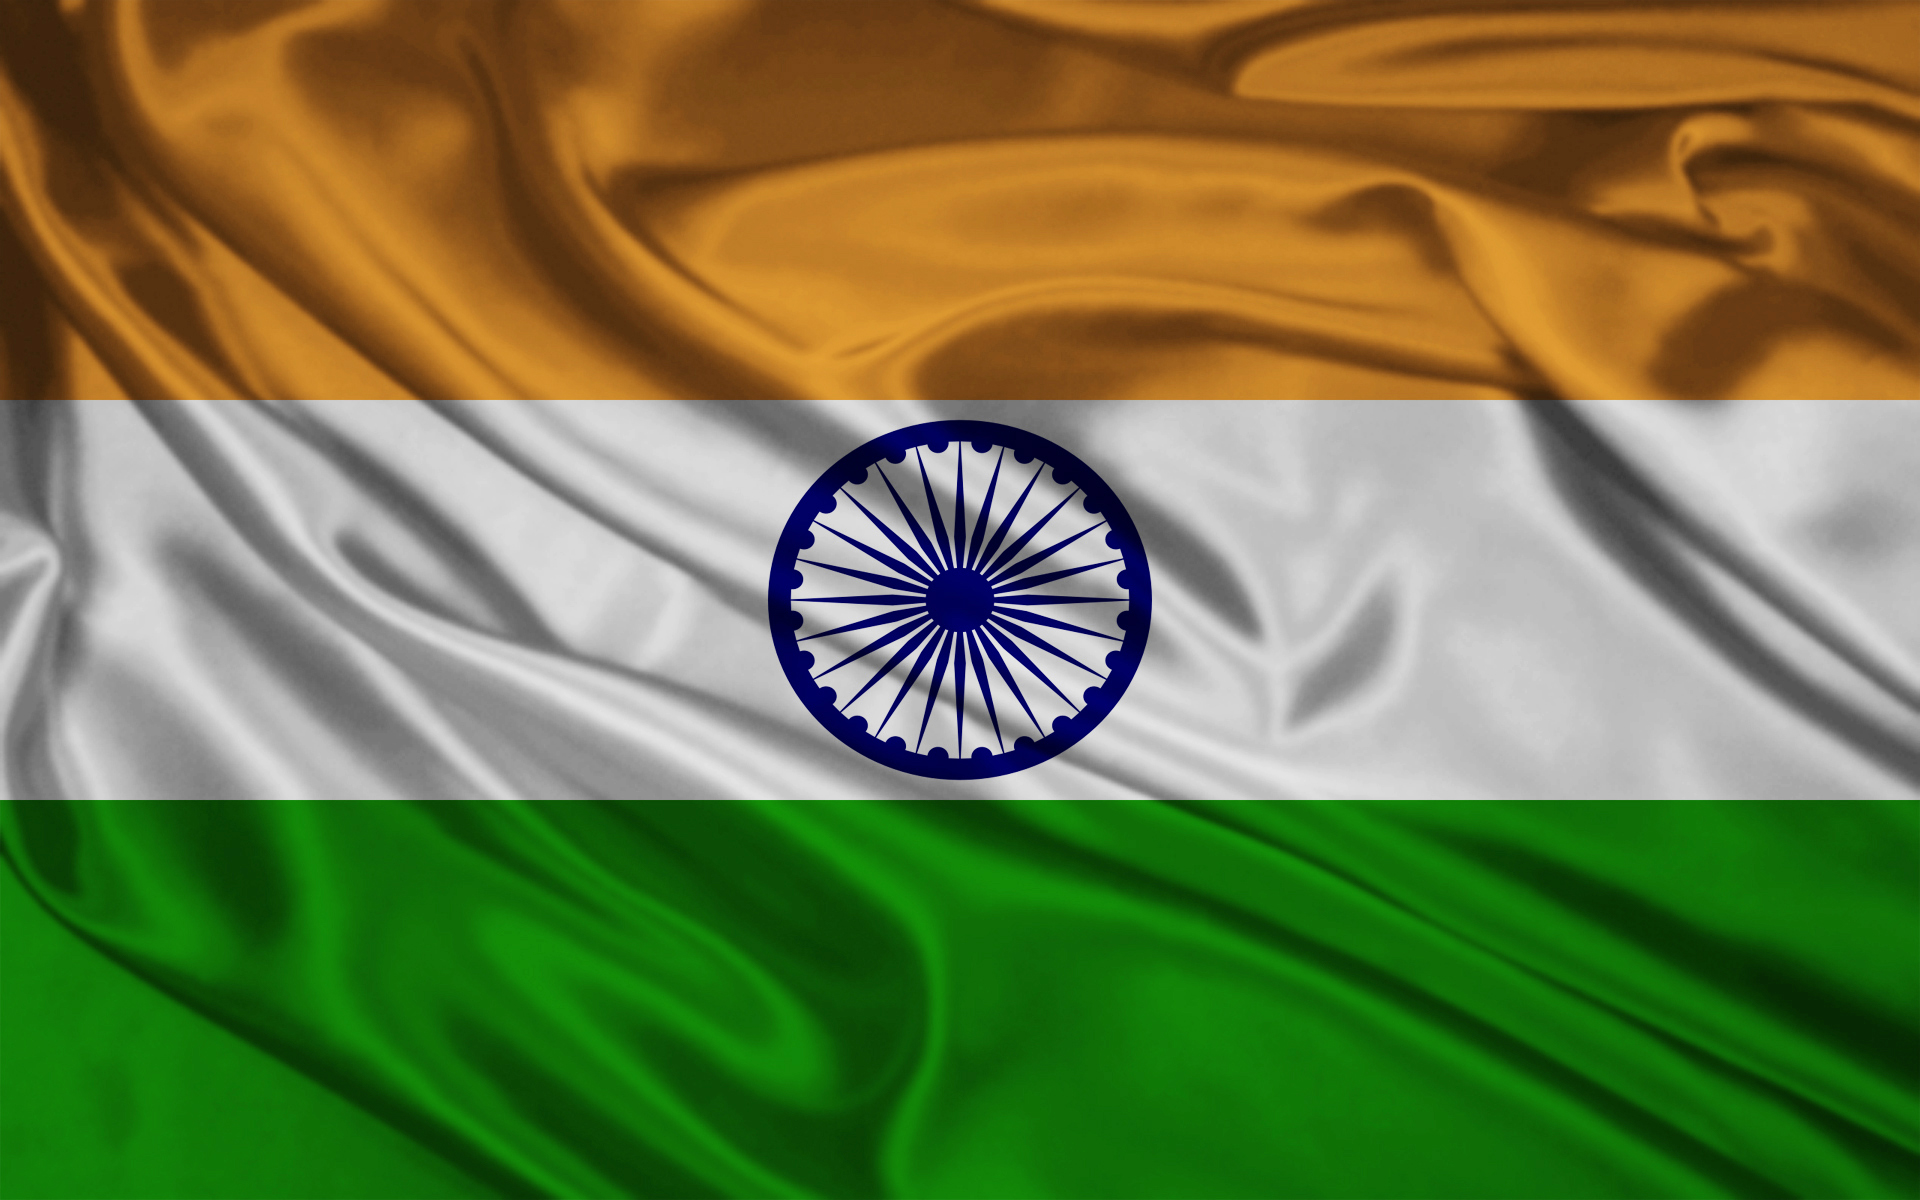 Flower With Indian Flag Hd: Indien-Flagge Hintergrundbilder